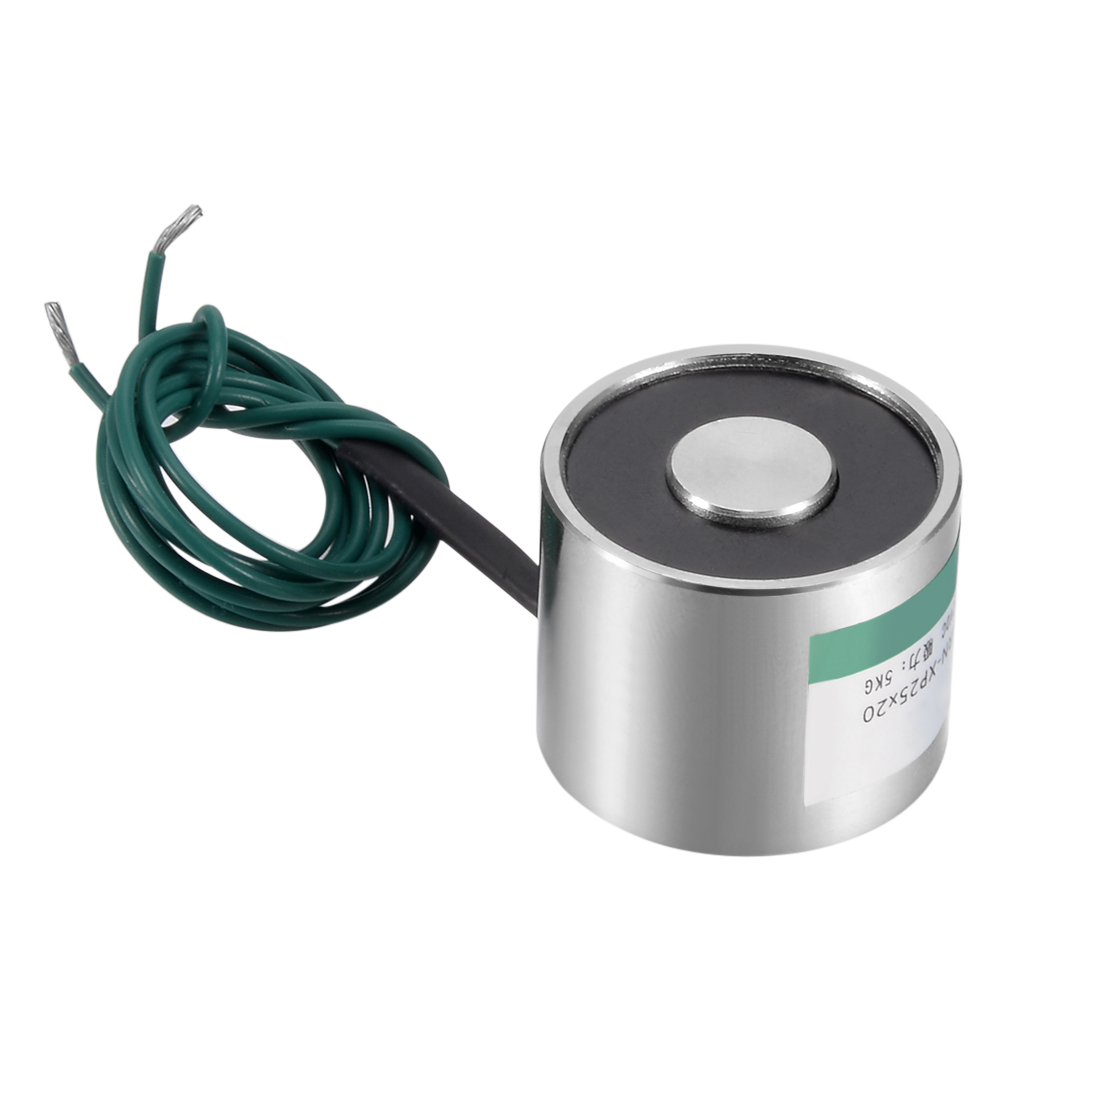 Uxcell 25mm X 20mm DC12V 50N Sucking Disc Solenoid Lift Holding Electromagnet